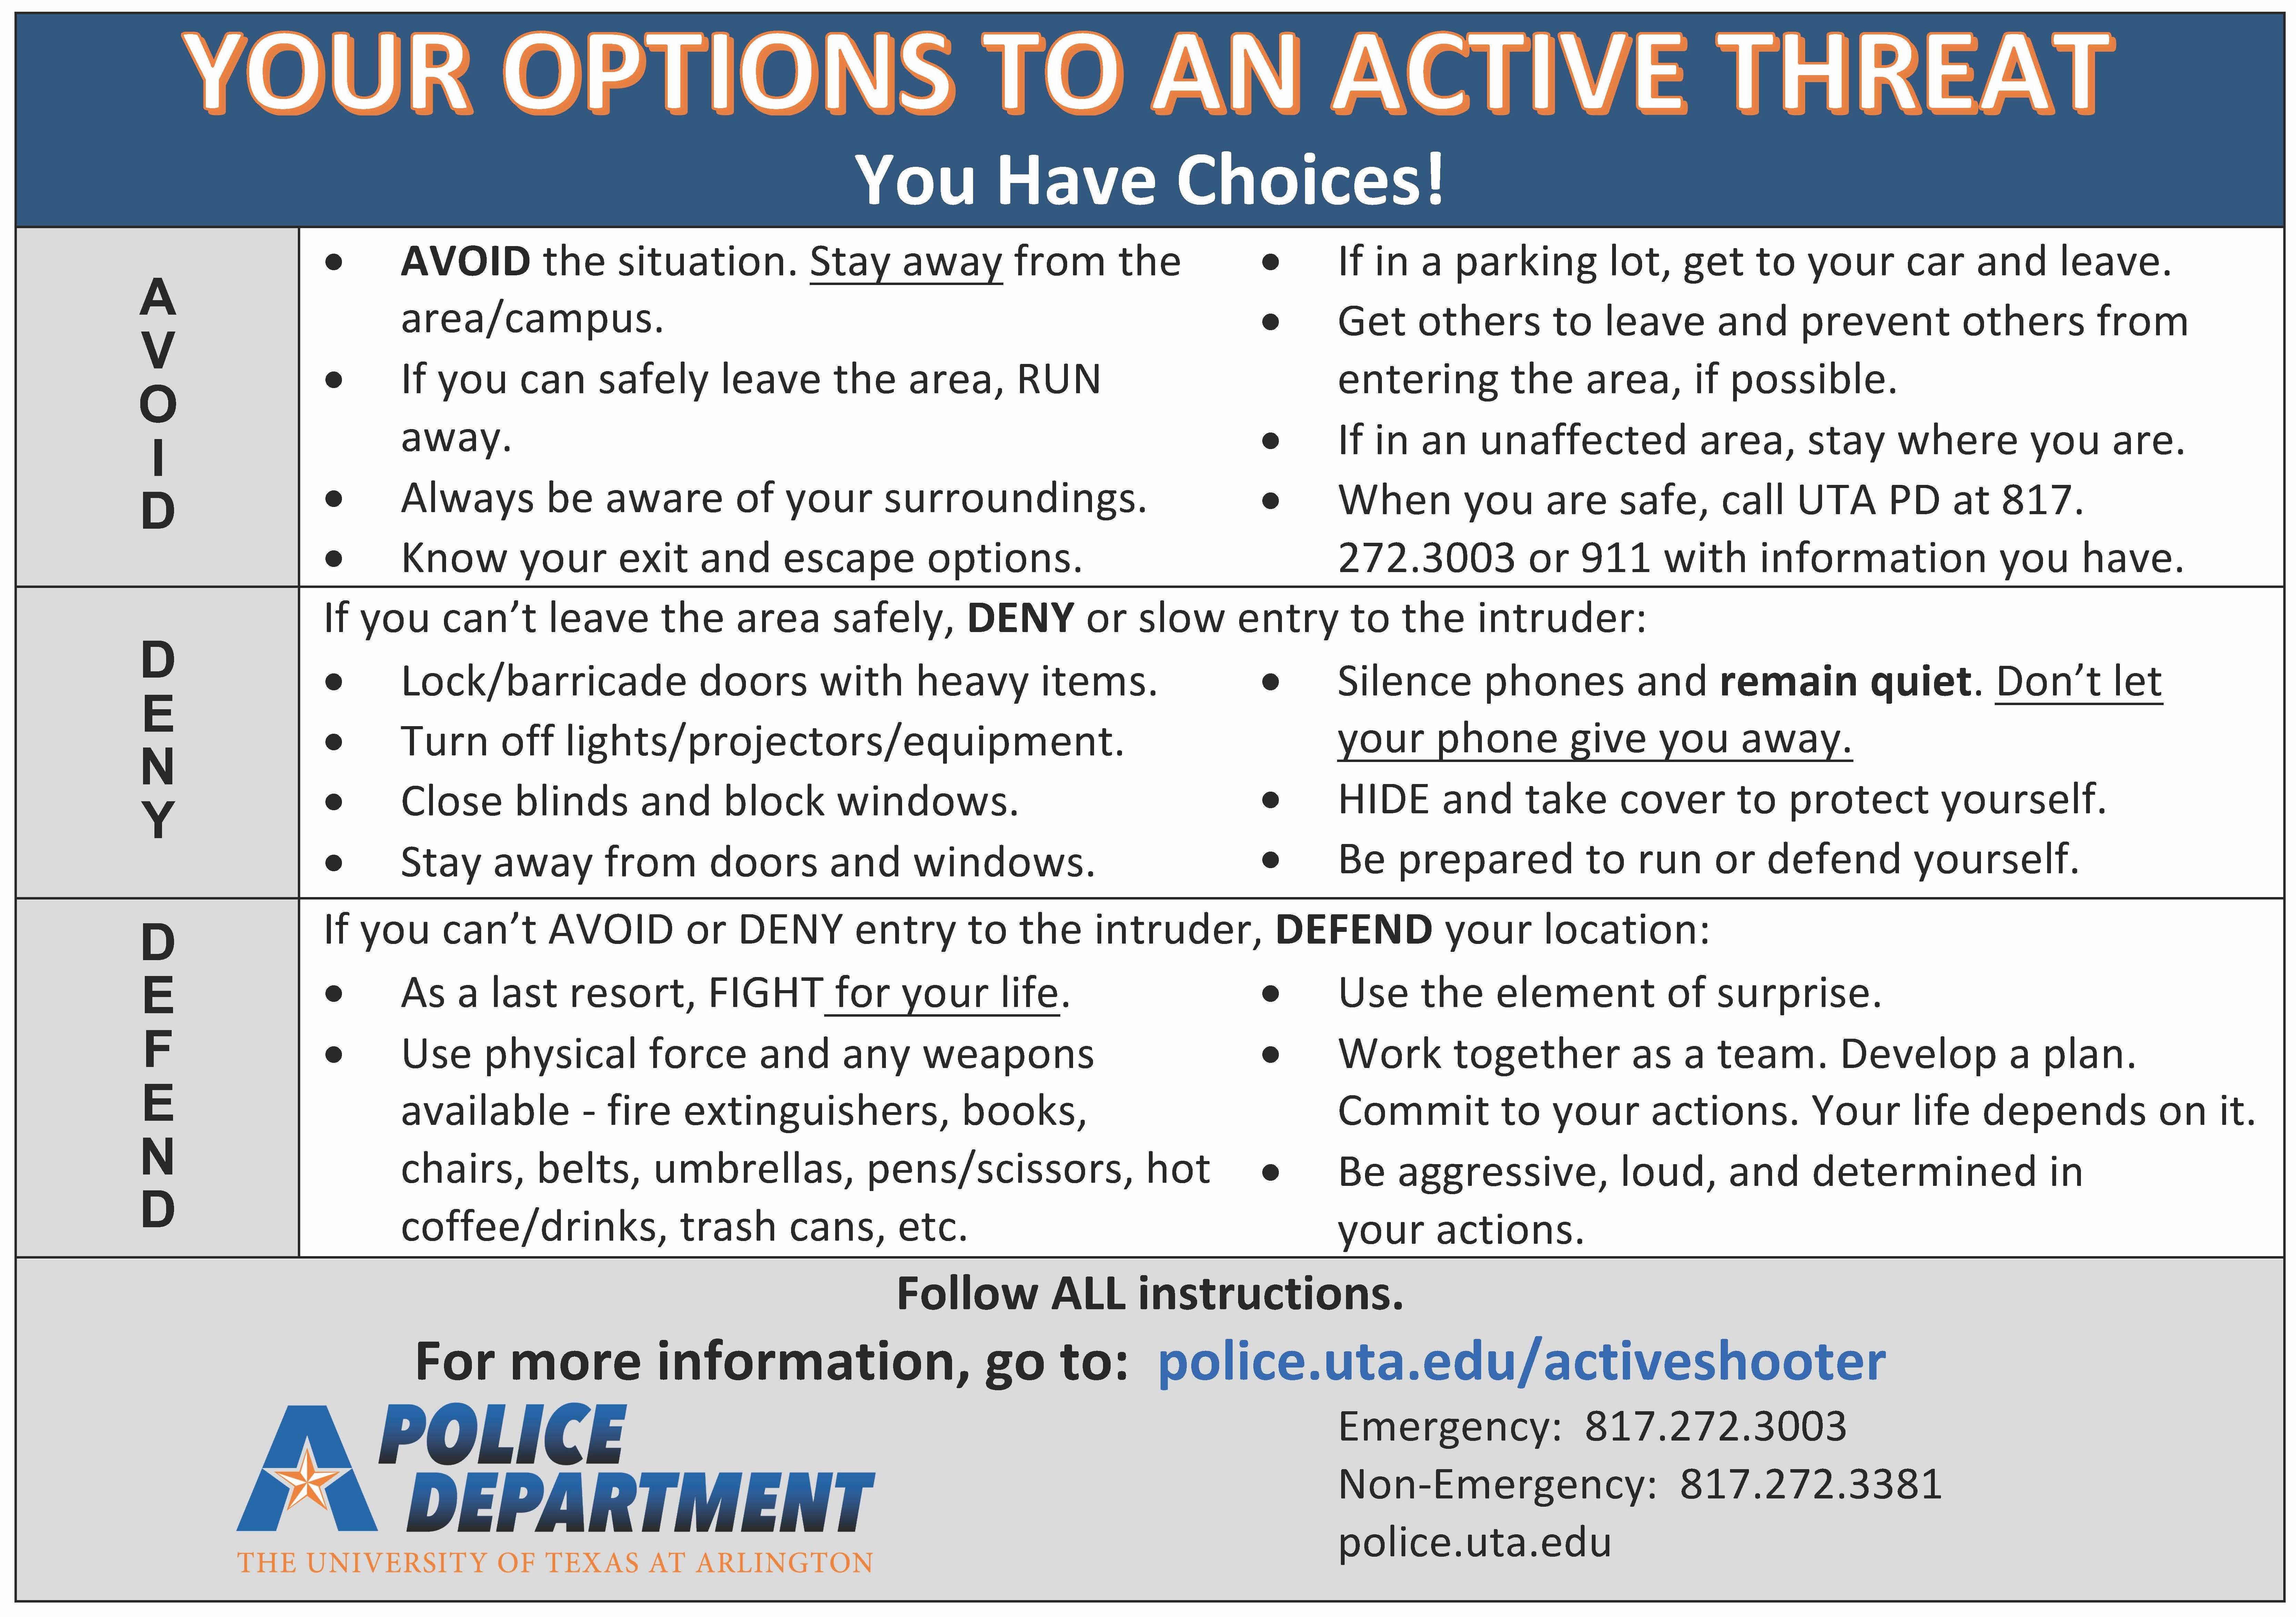 Active Threat Options Card